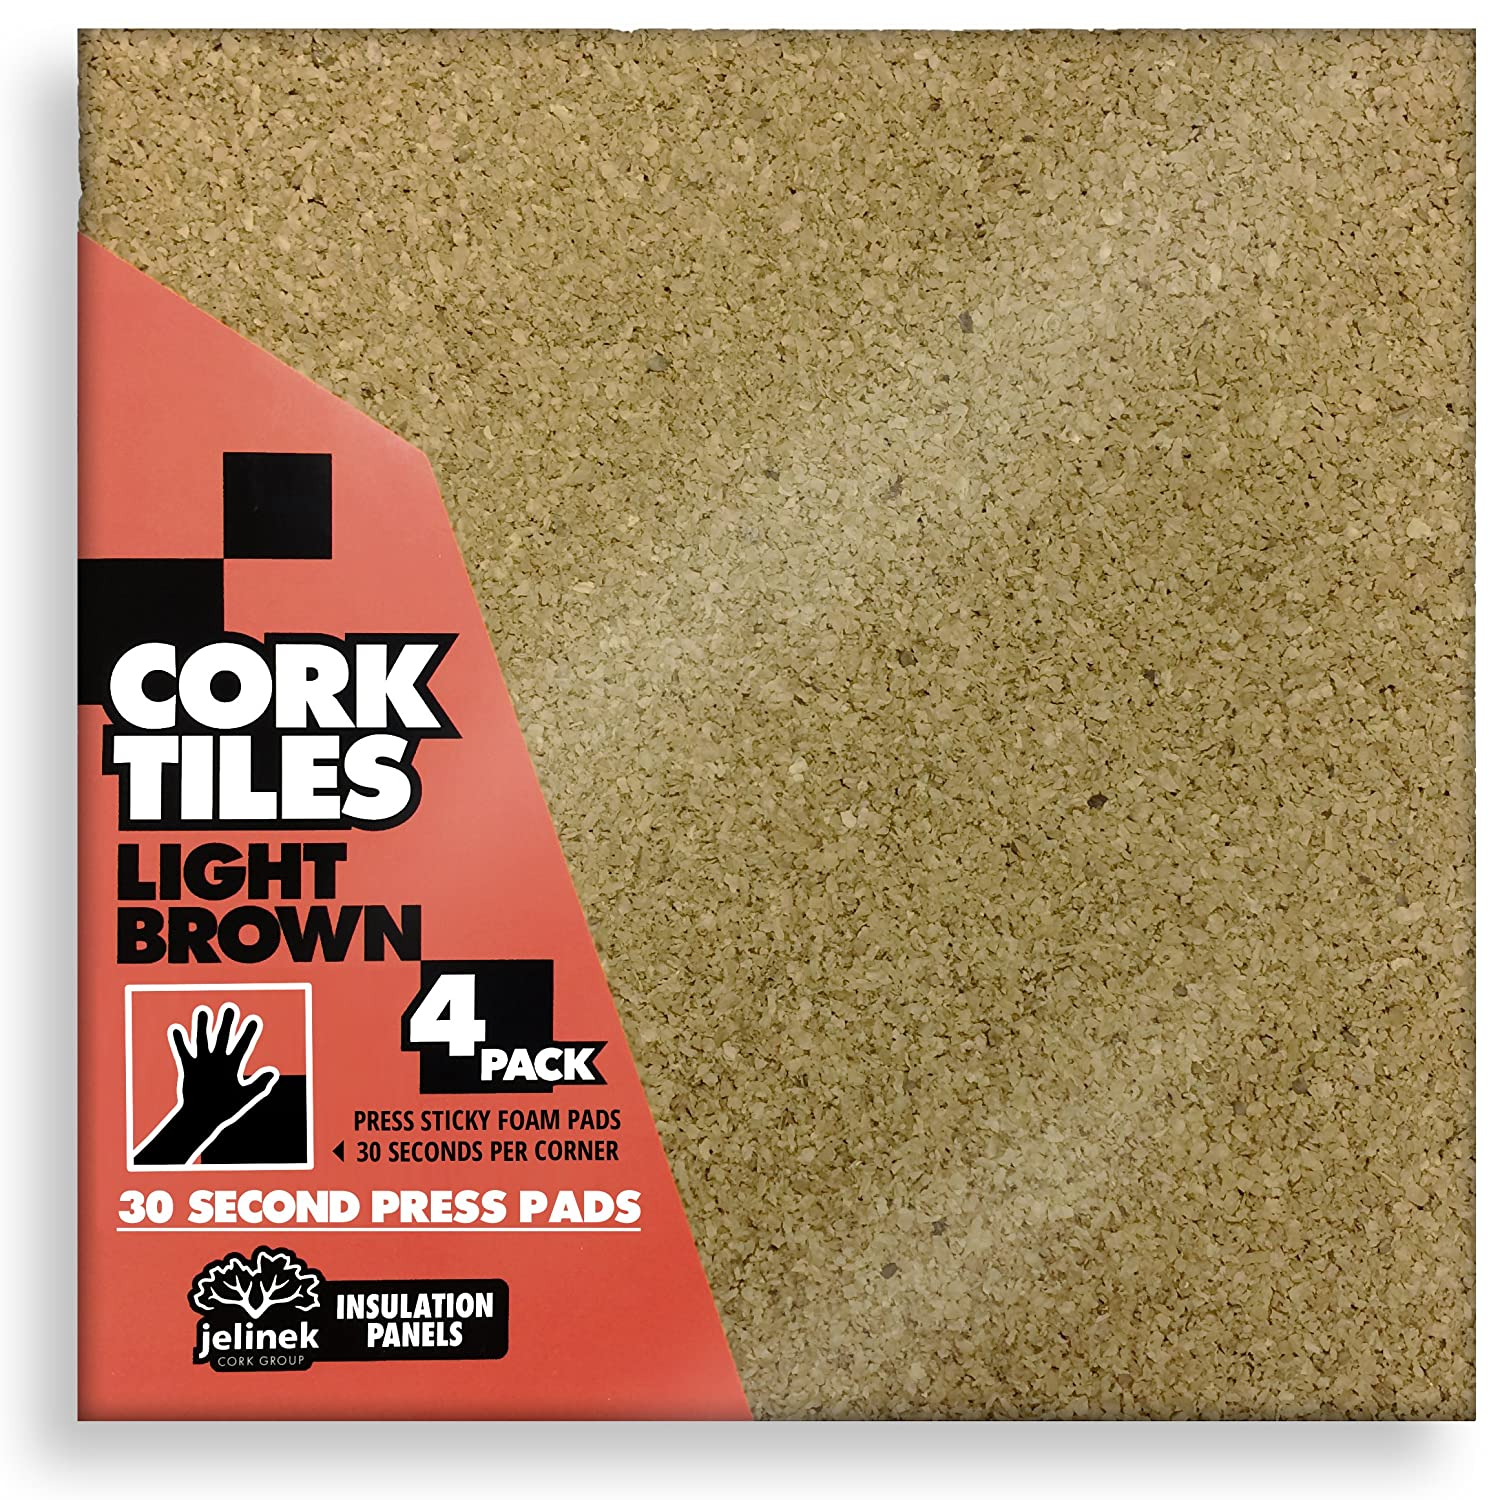 12 x 12 Light Brown Cork Tiles (16 Pack) Jelinek Cork Group wlins-lig30530550n-p16